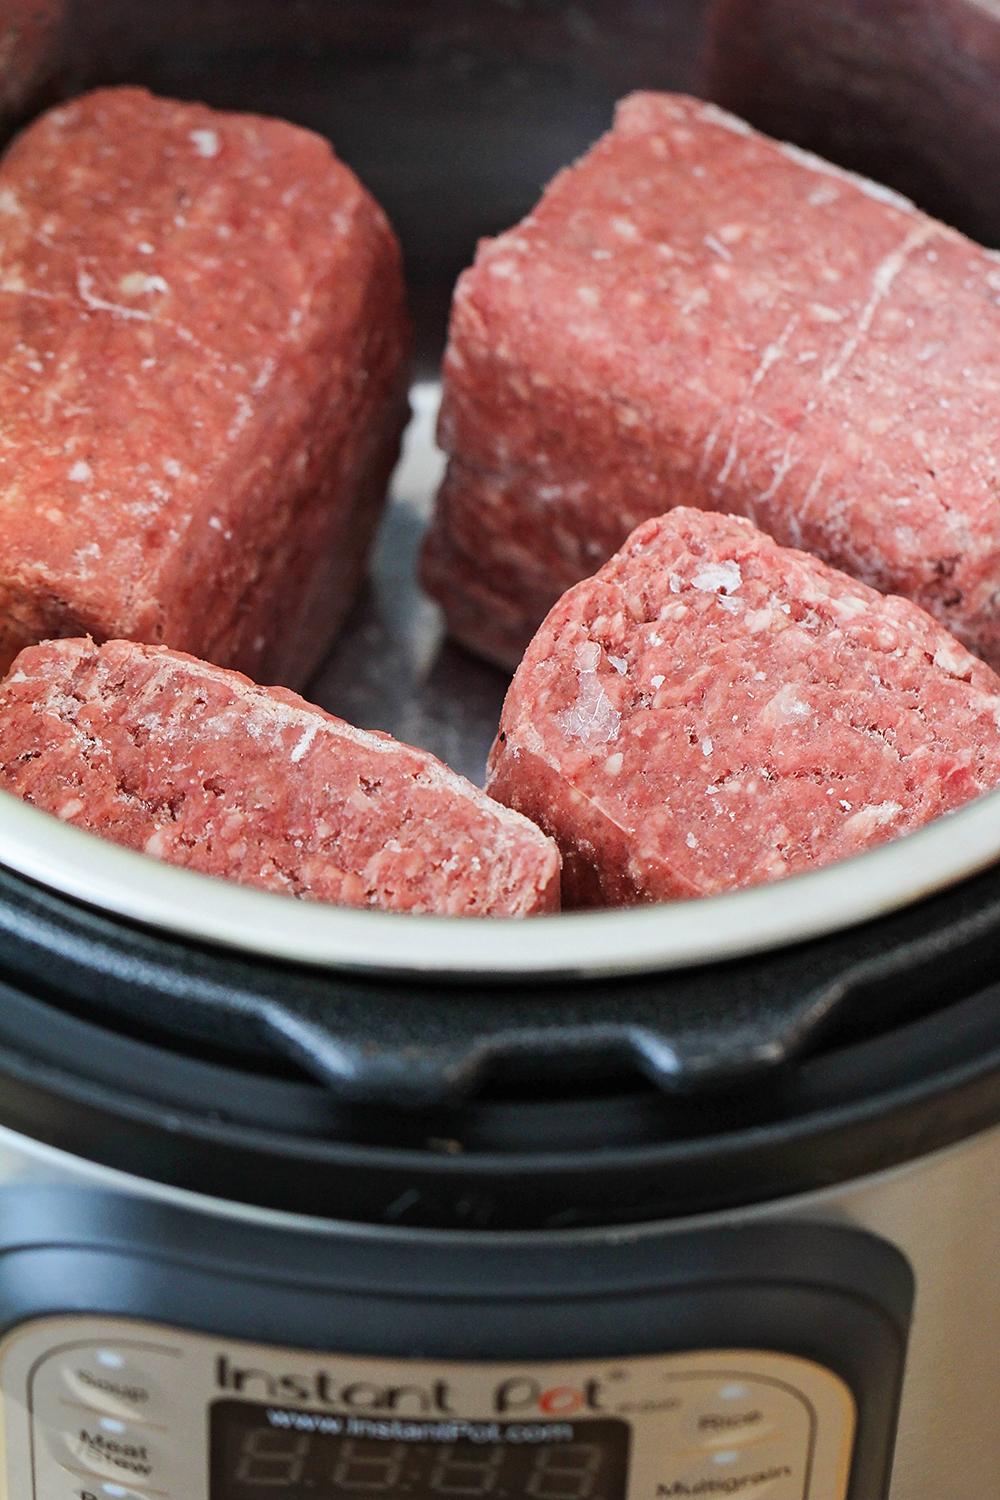 Forgot to thaw ground beef for dinner? No worries - just throw it in the Instant Pot! It's so quick and easy, and makes perfect ground beef!